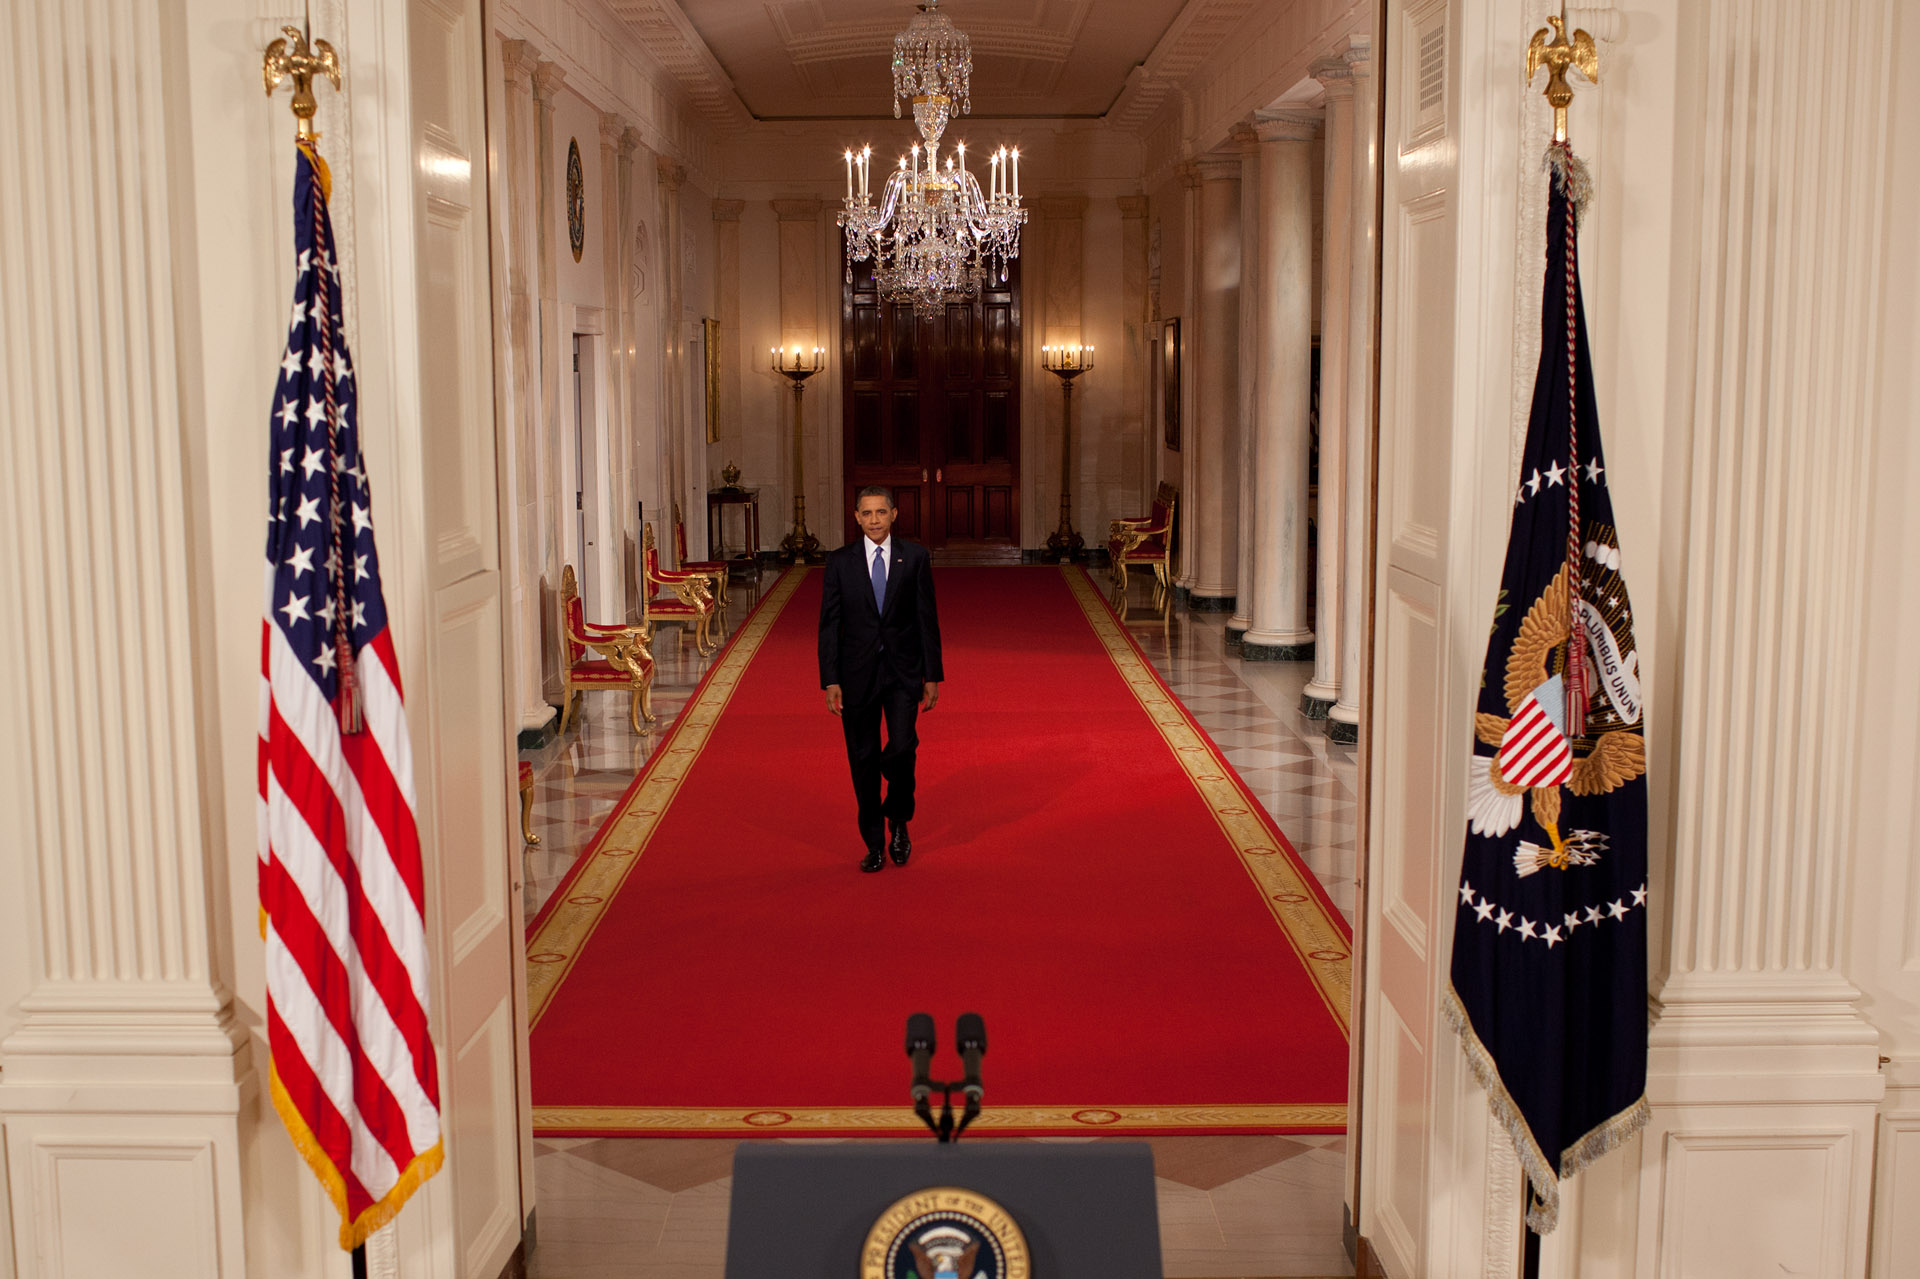 President Obama On The Way Forward In Afghanistan Whitehouse Gov